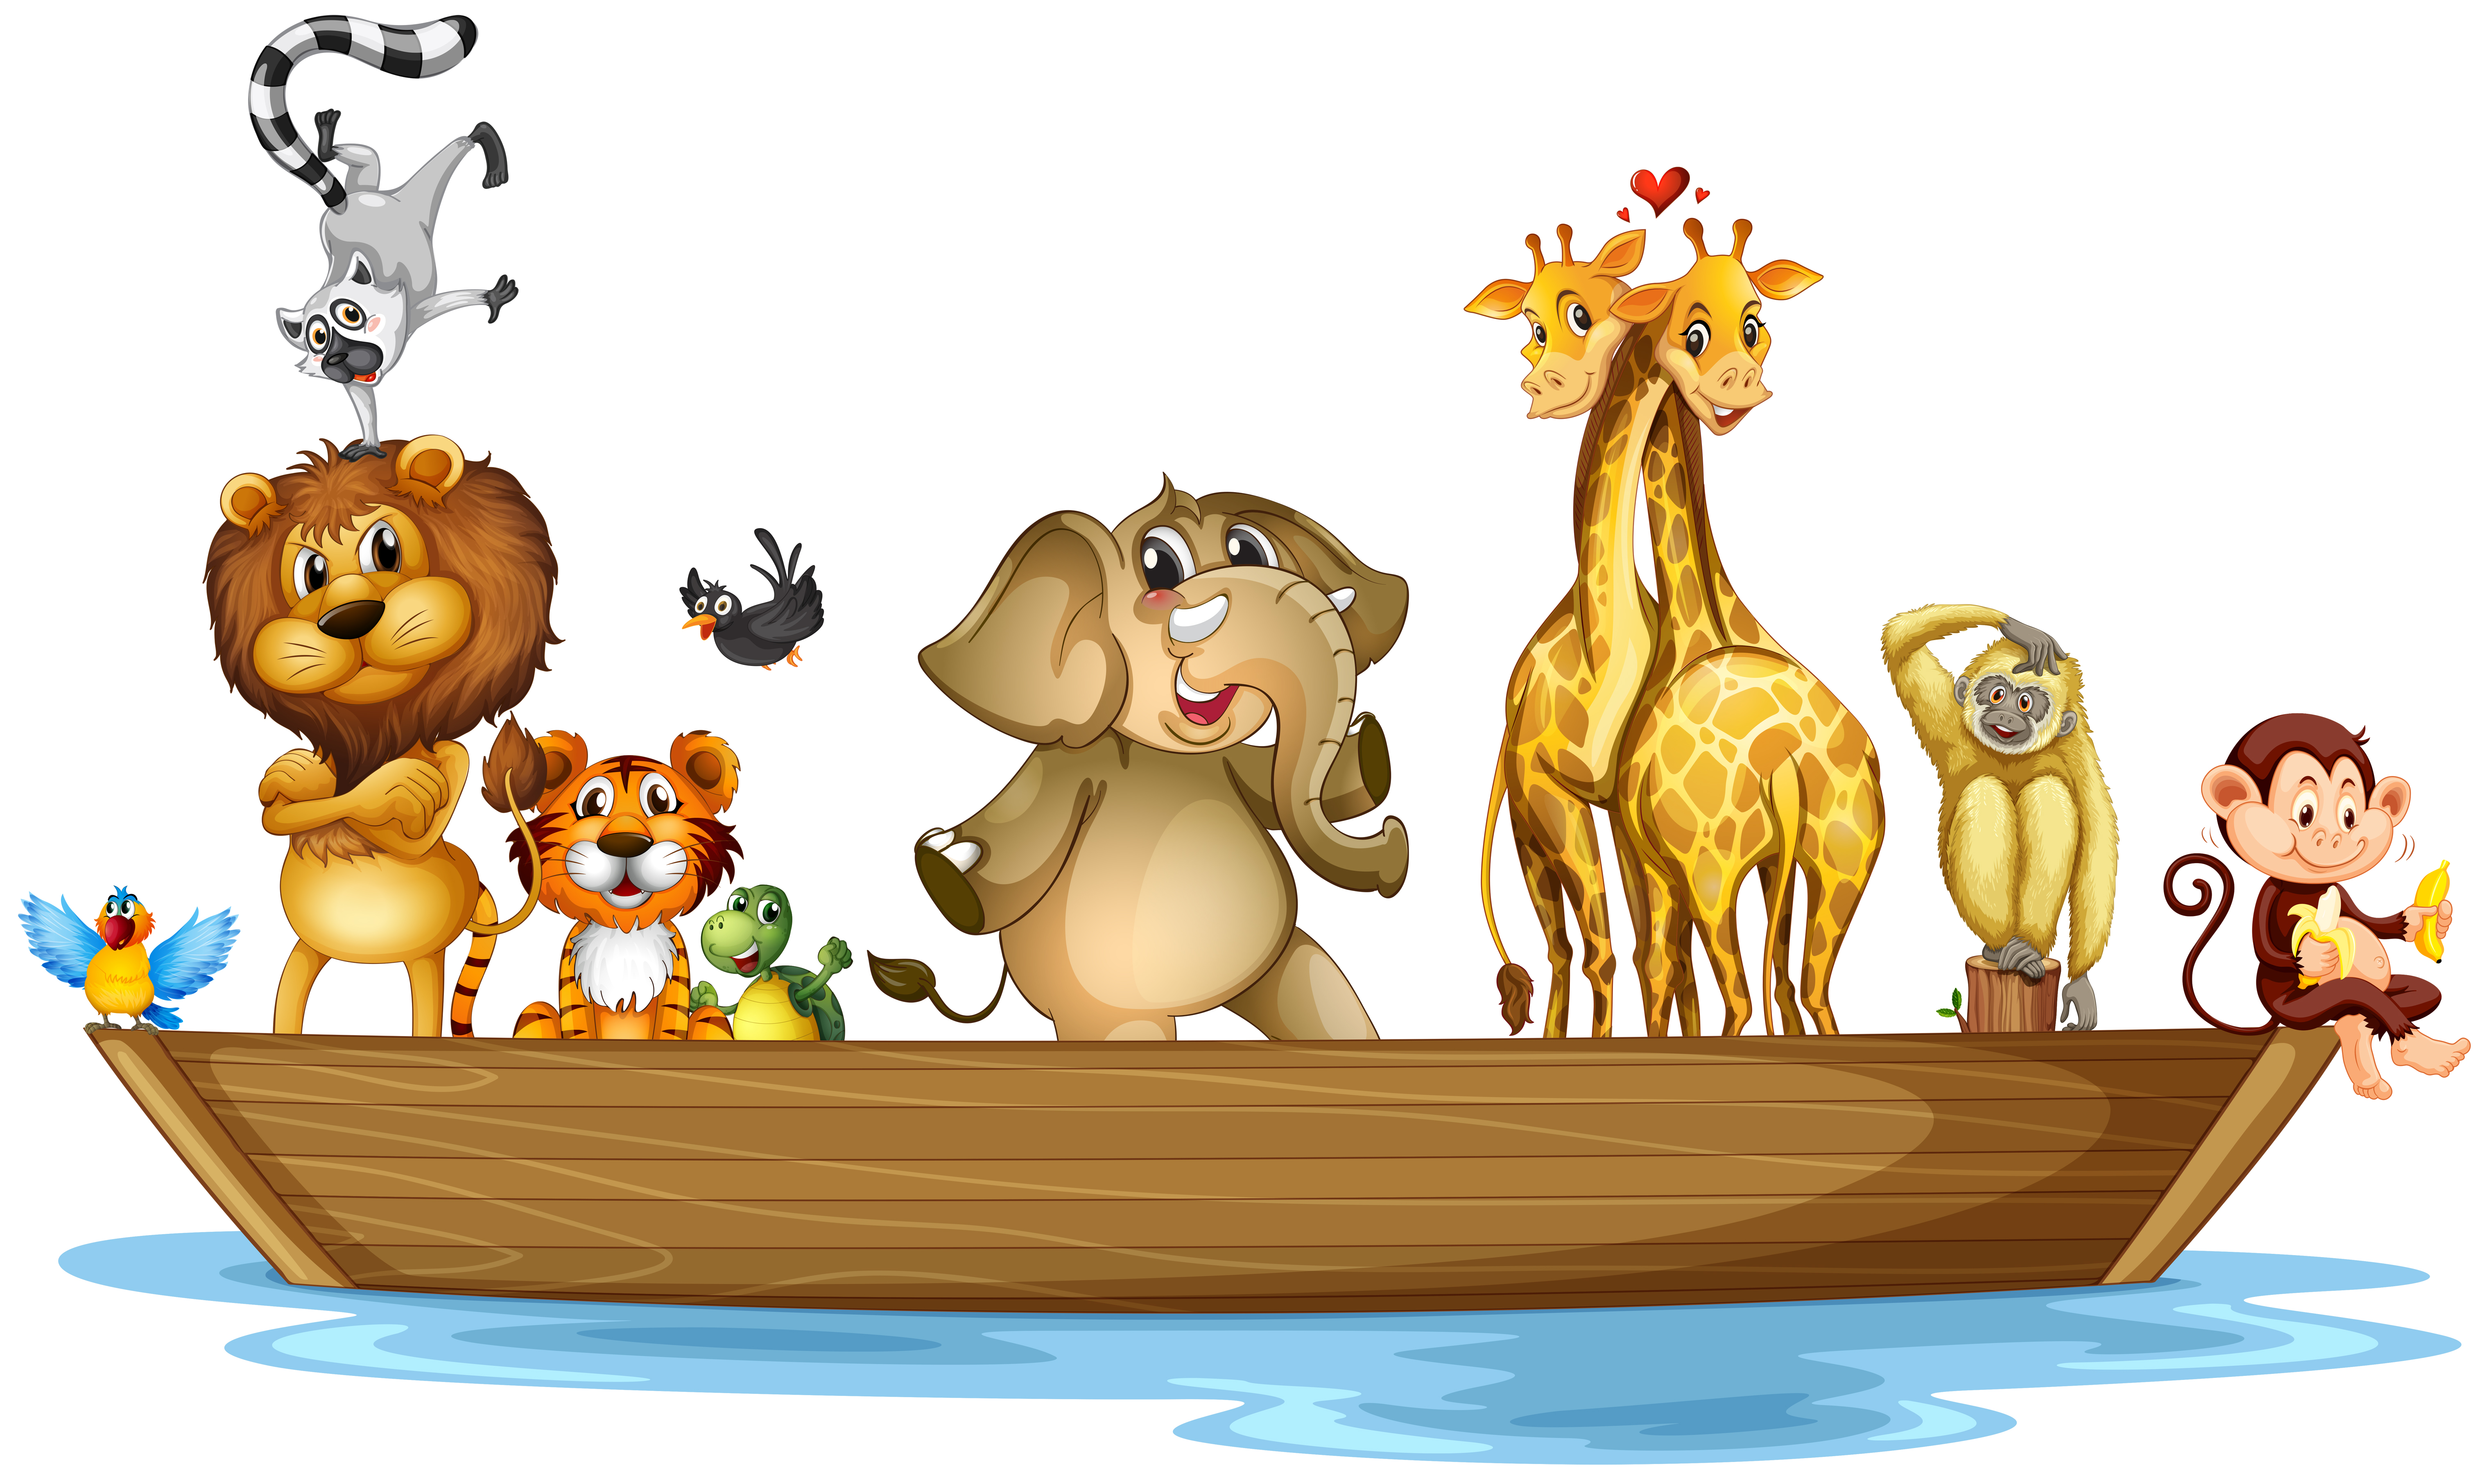 Wild animals riding on the boat - Download Free Vectors ...